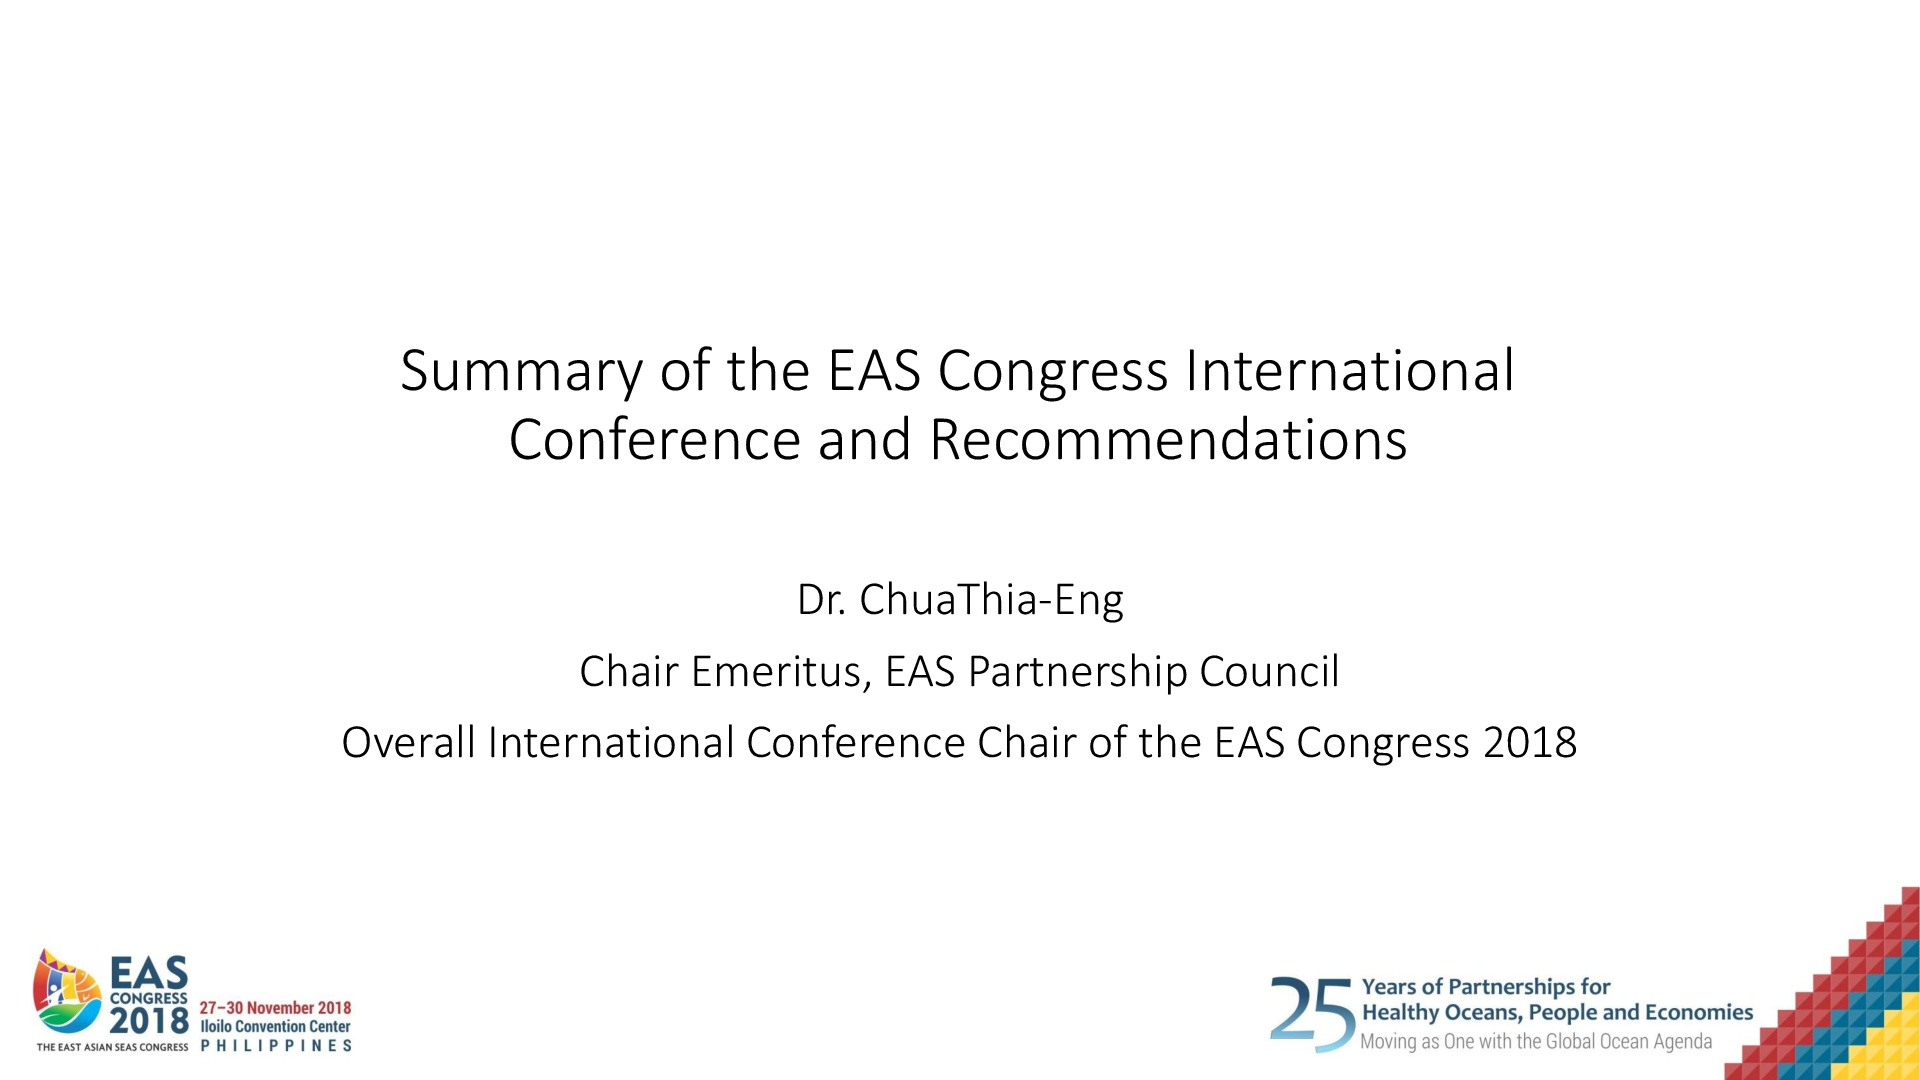 Summary of the EAS Congress International Conference and Recommendations